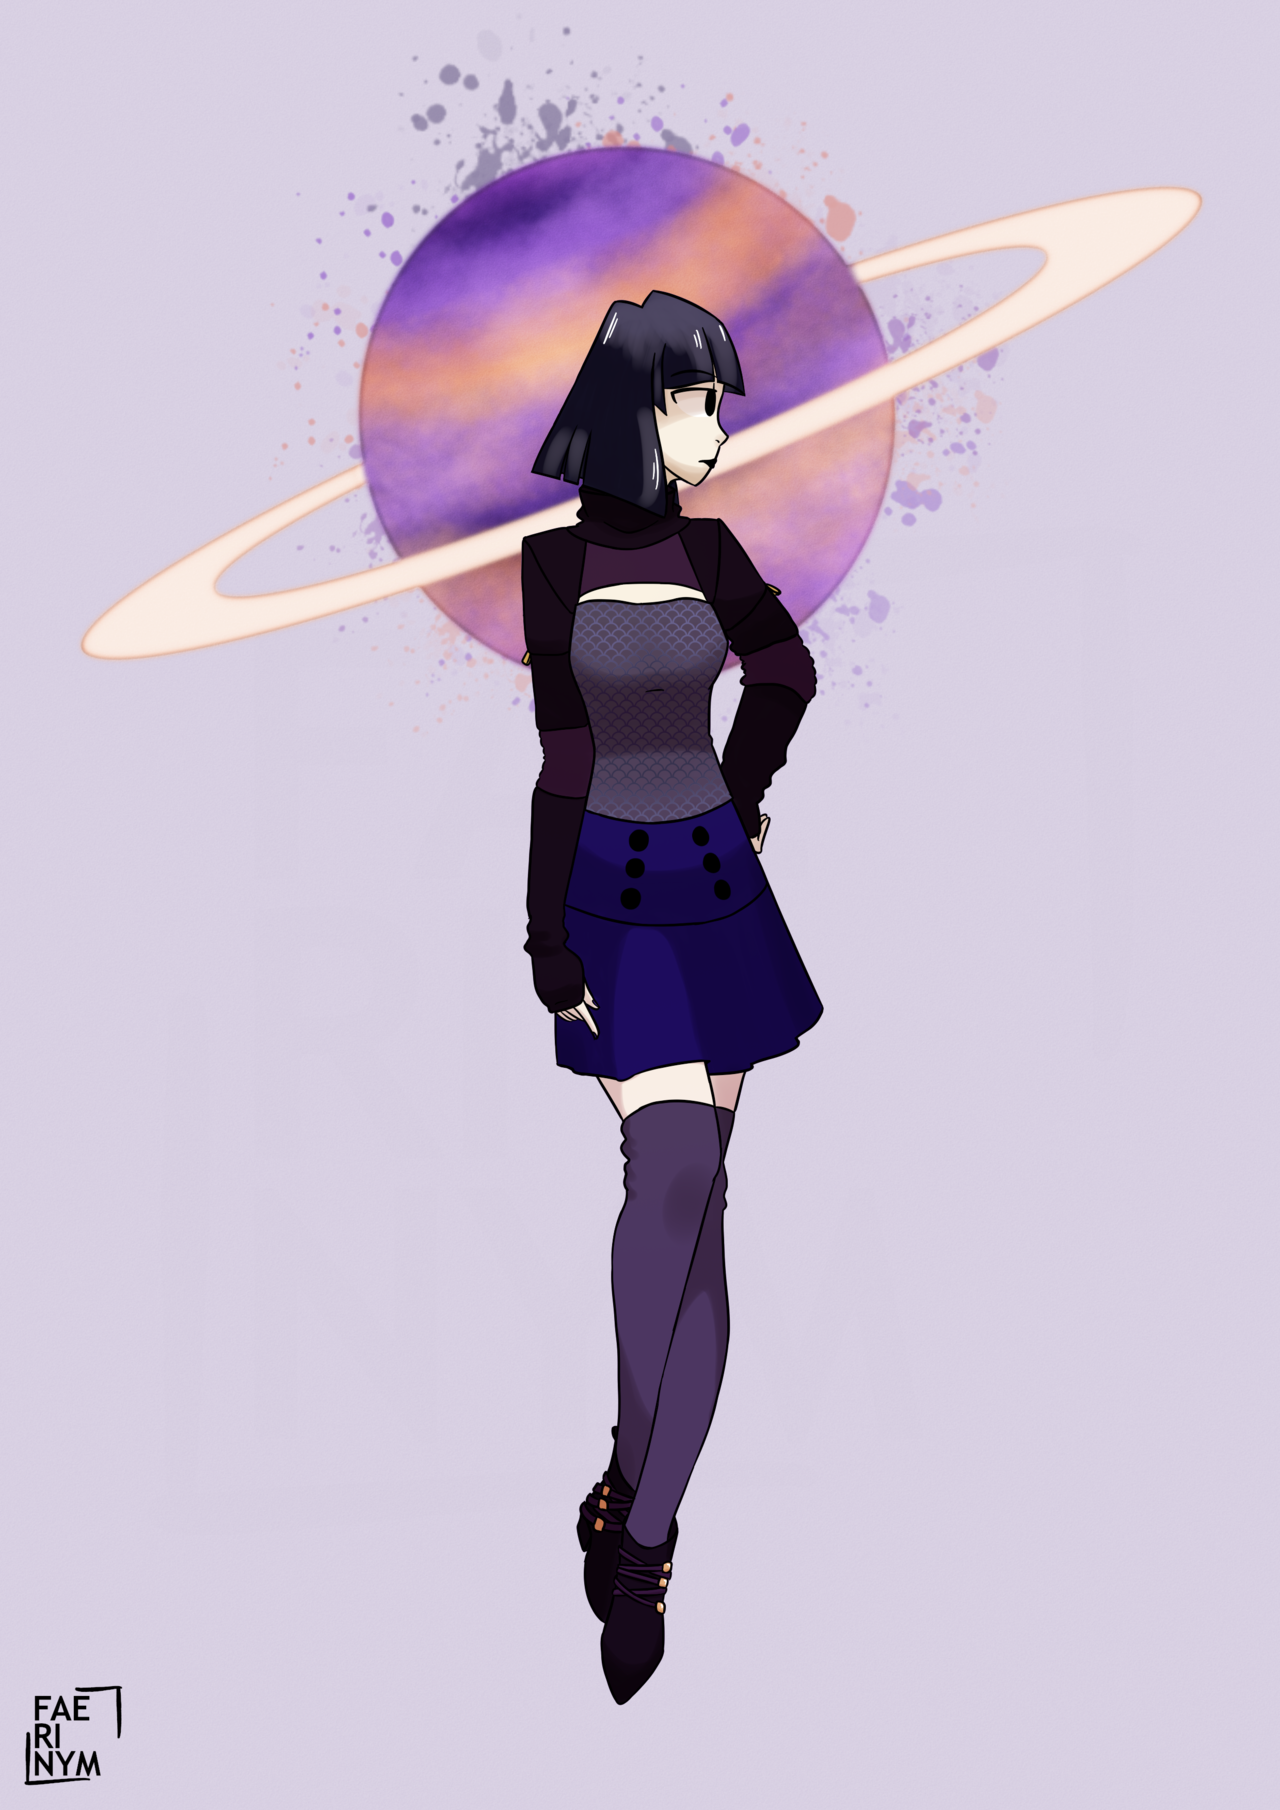 saturn but in my fave goth clothing brand -w- (art on fae's blog??? in 2019???? it's more likely than you think) #wfaves